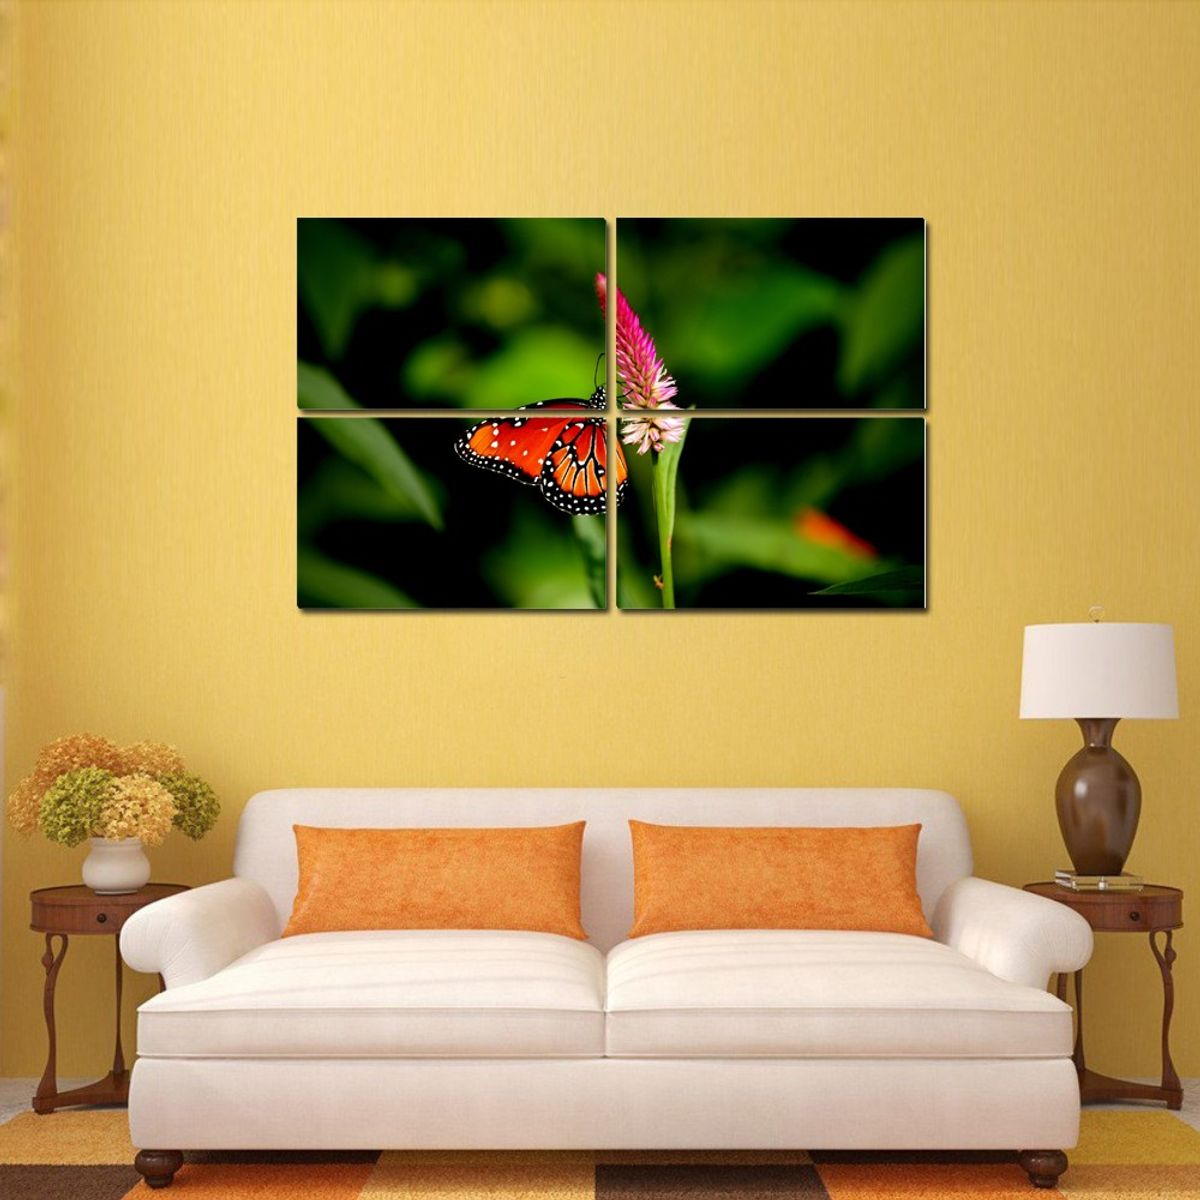 Buy Butterfly 4 Panel Wall Art Painting at Lowest Price ...